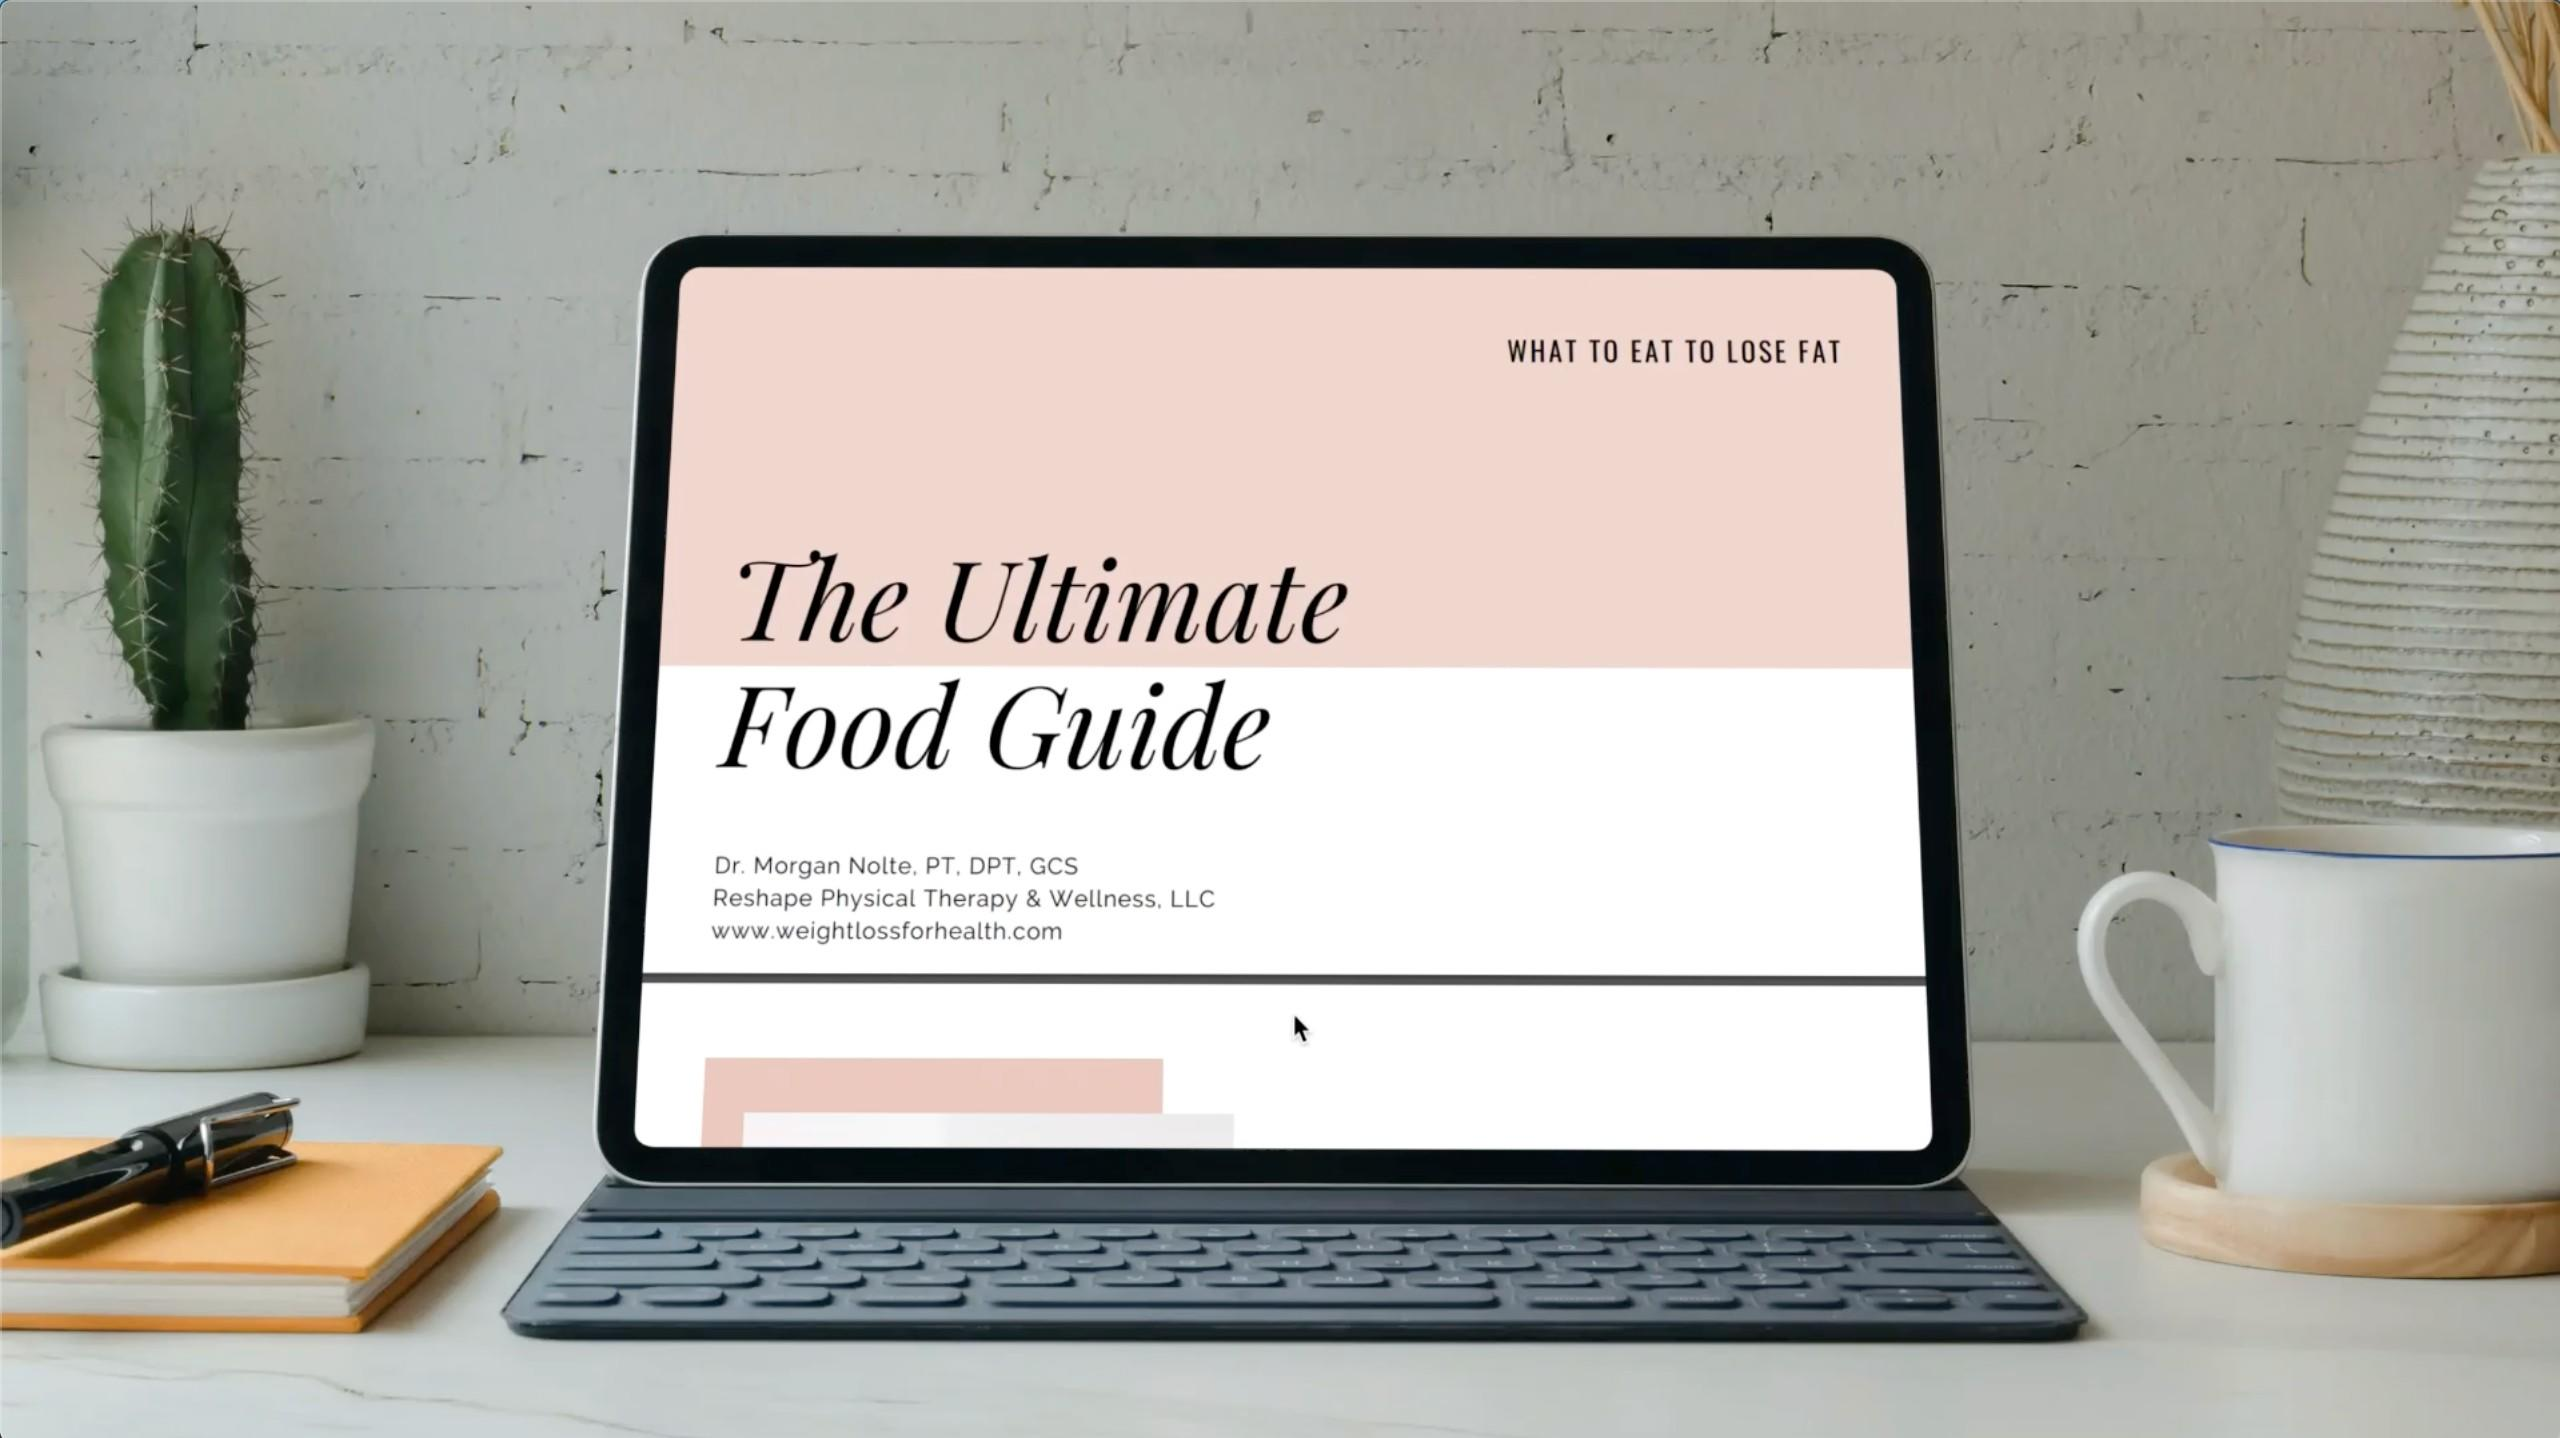 Fat Burning Foods for Weight Loss   The Ultimate Food Guide by Dr. Morgan Nolte